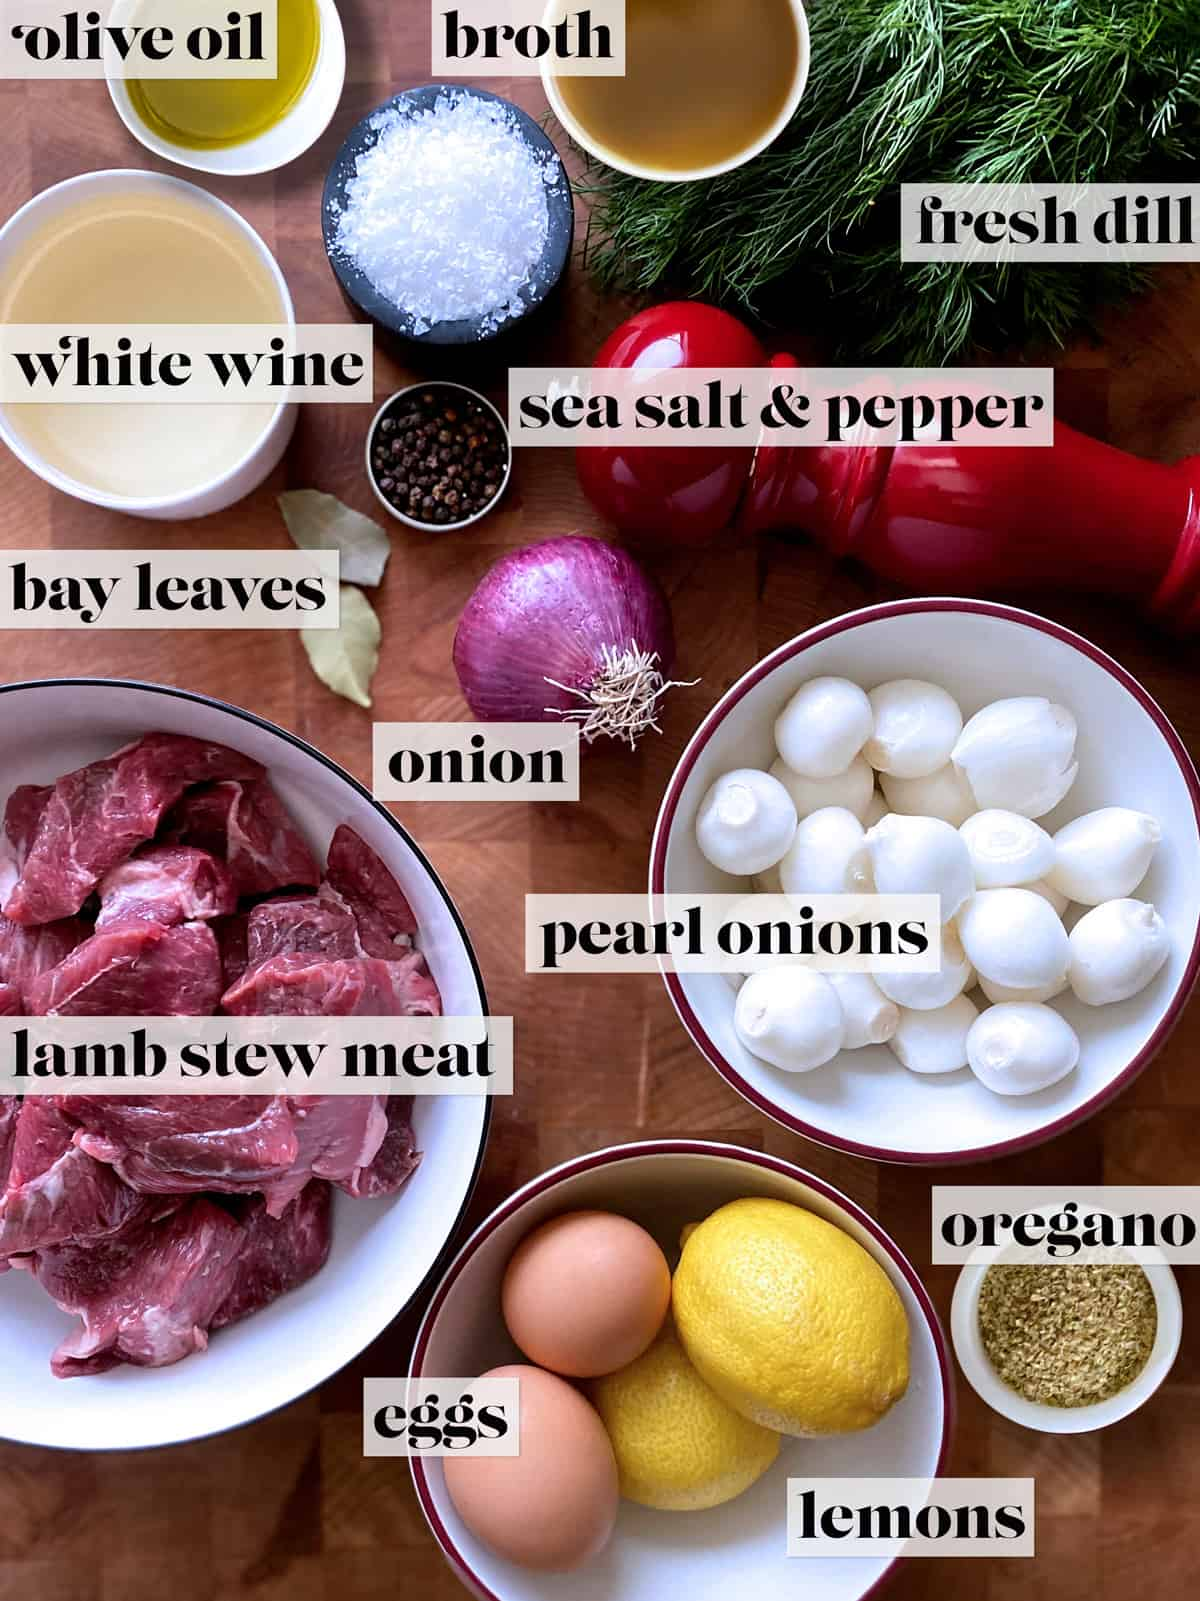 Ingredients for lamb stew. Small bowls with salt, olive oil, broth, pepper, white wine. A bunch of fresh dill, a pepper grinder, two bay leaves, an onion, a bowl with lamb stew cubes, a bowl with pears onions, a bowl with two eggs and two lemons and a small bowl with oregano, all on a butcher block.